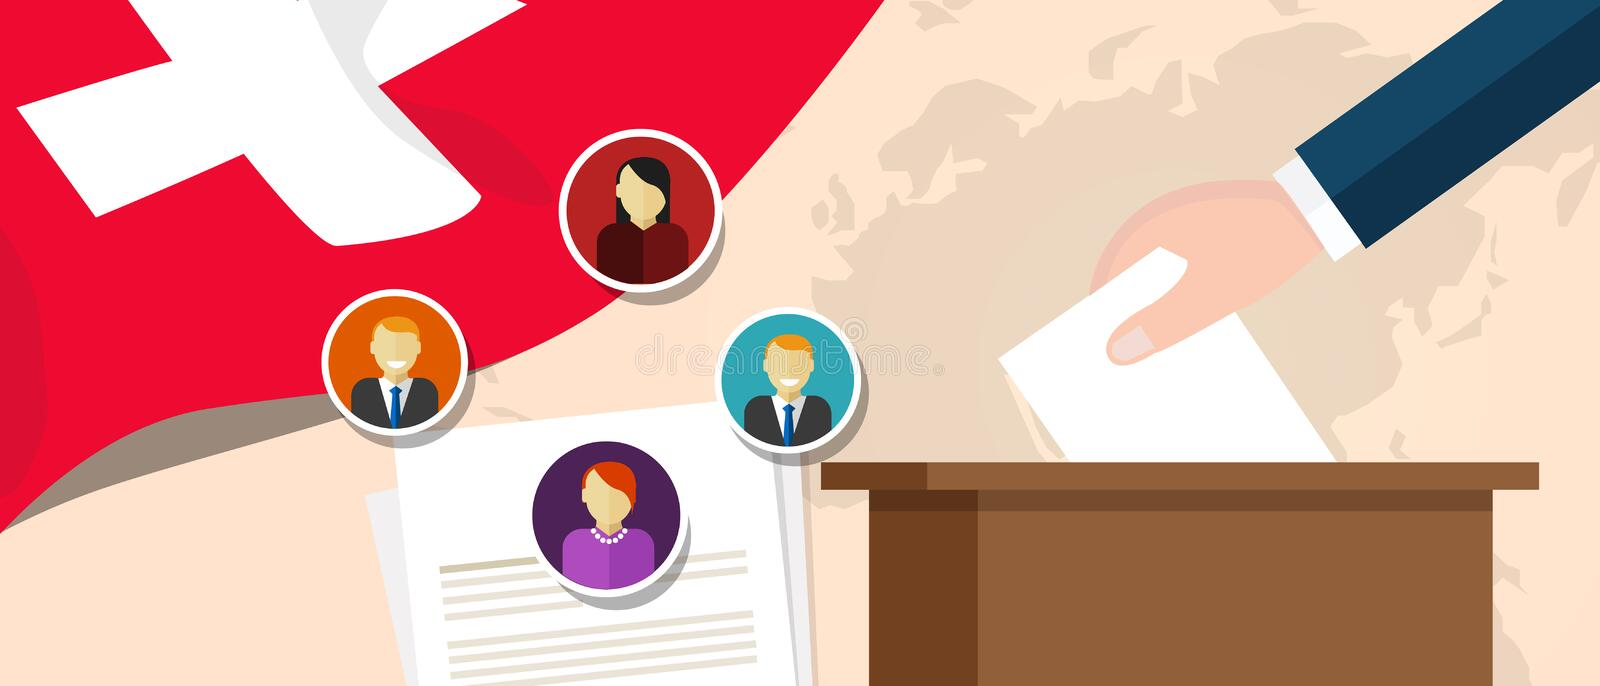 Switzerland Swiss democracy political process selecting president or parliament member with election and referendum. Freedom to vote vector stock illustration